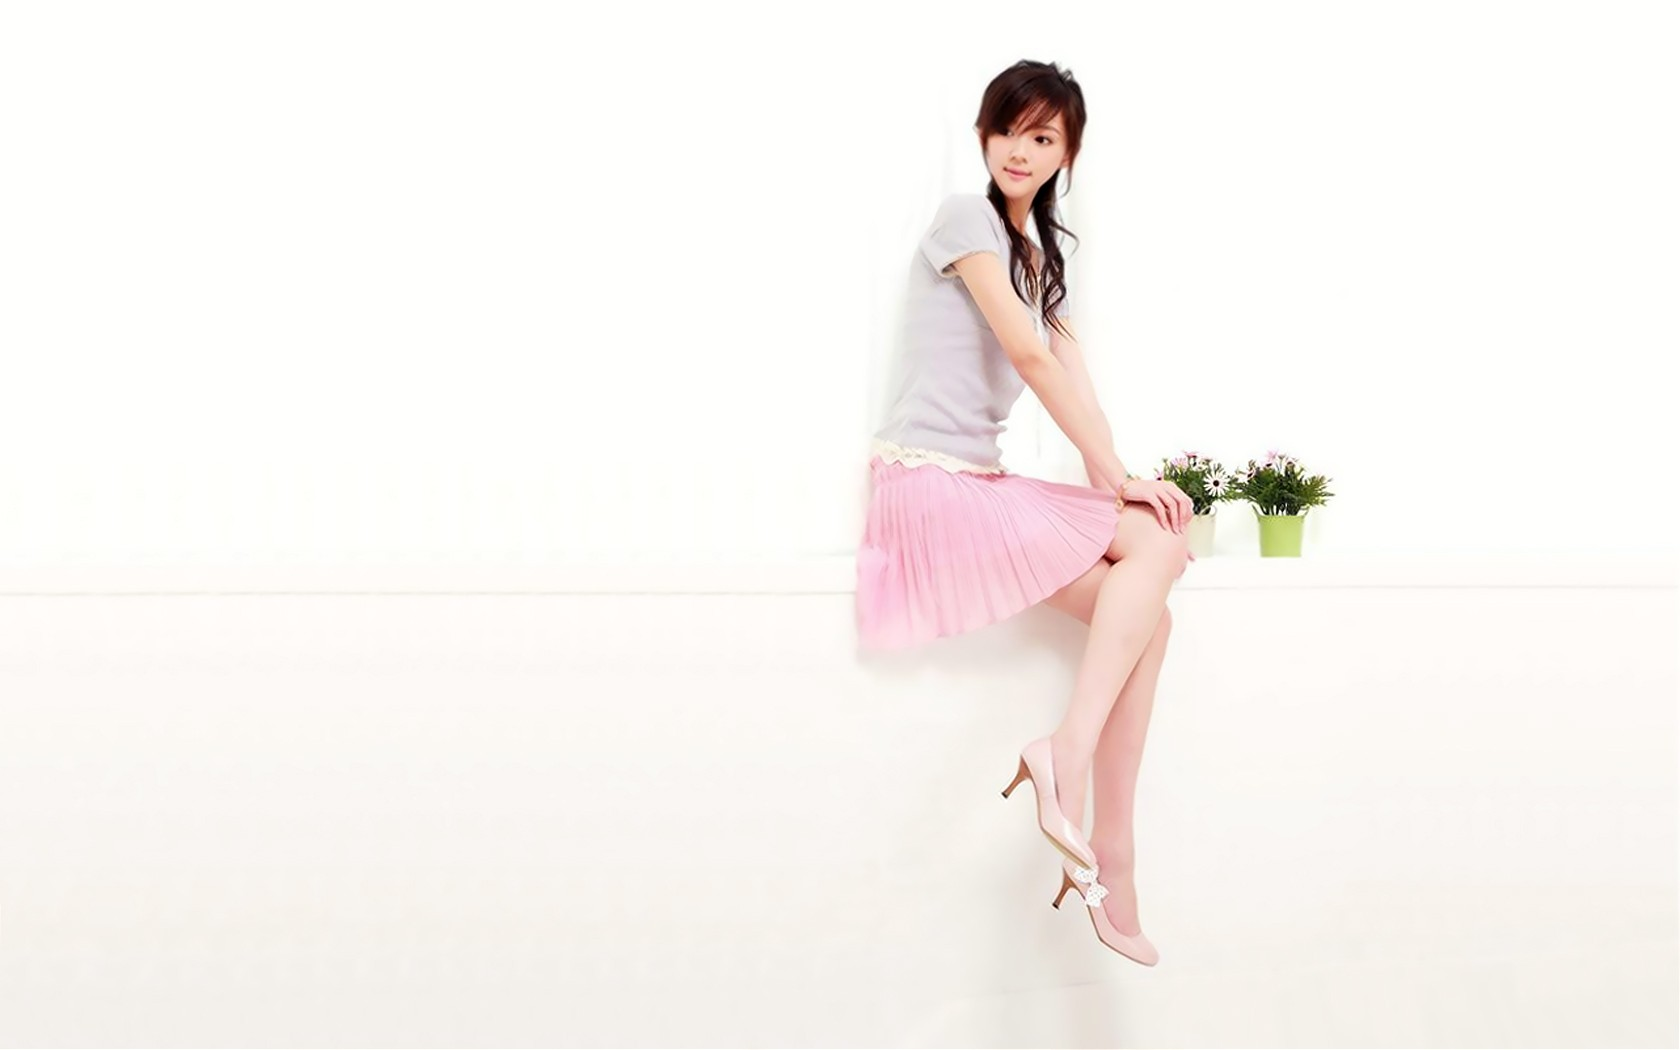 Pretty Beauty Tapete #46 - 1680x1050